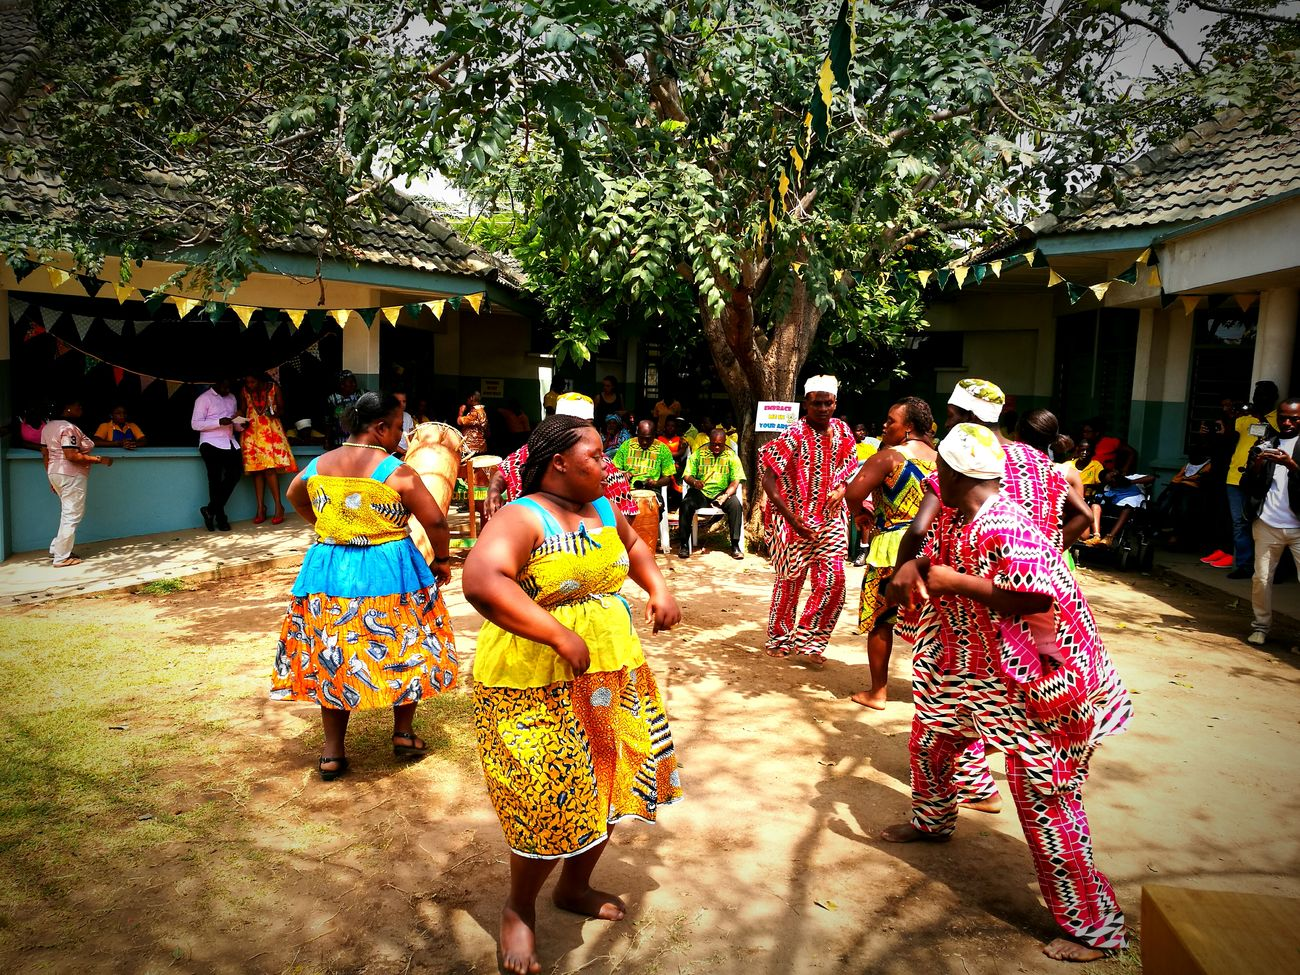 The Dance in Colours Traditional Clothing Large Group Of People Tradition People Celebration Leisure Activity